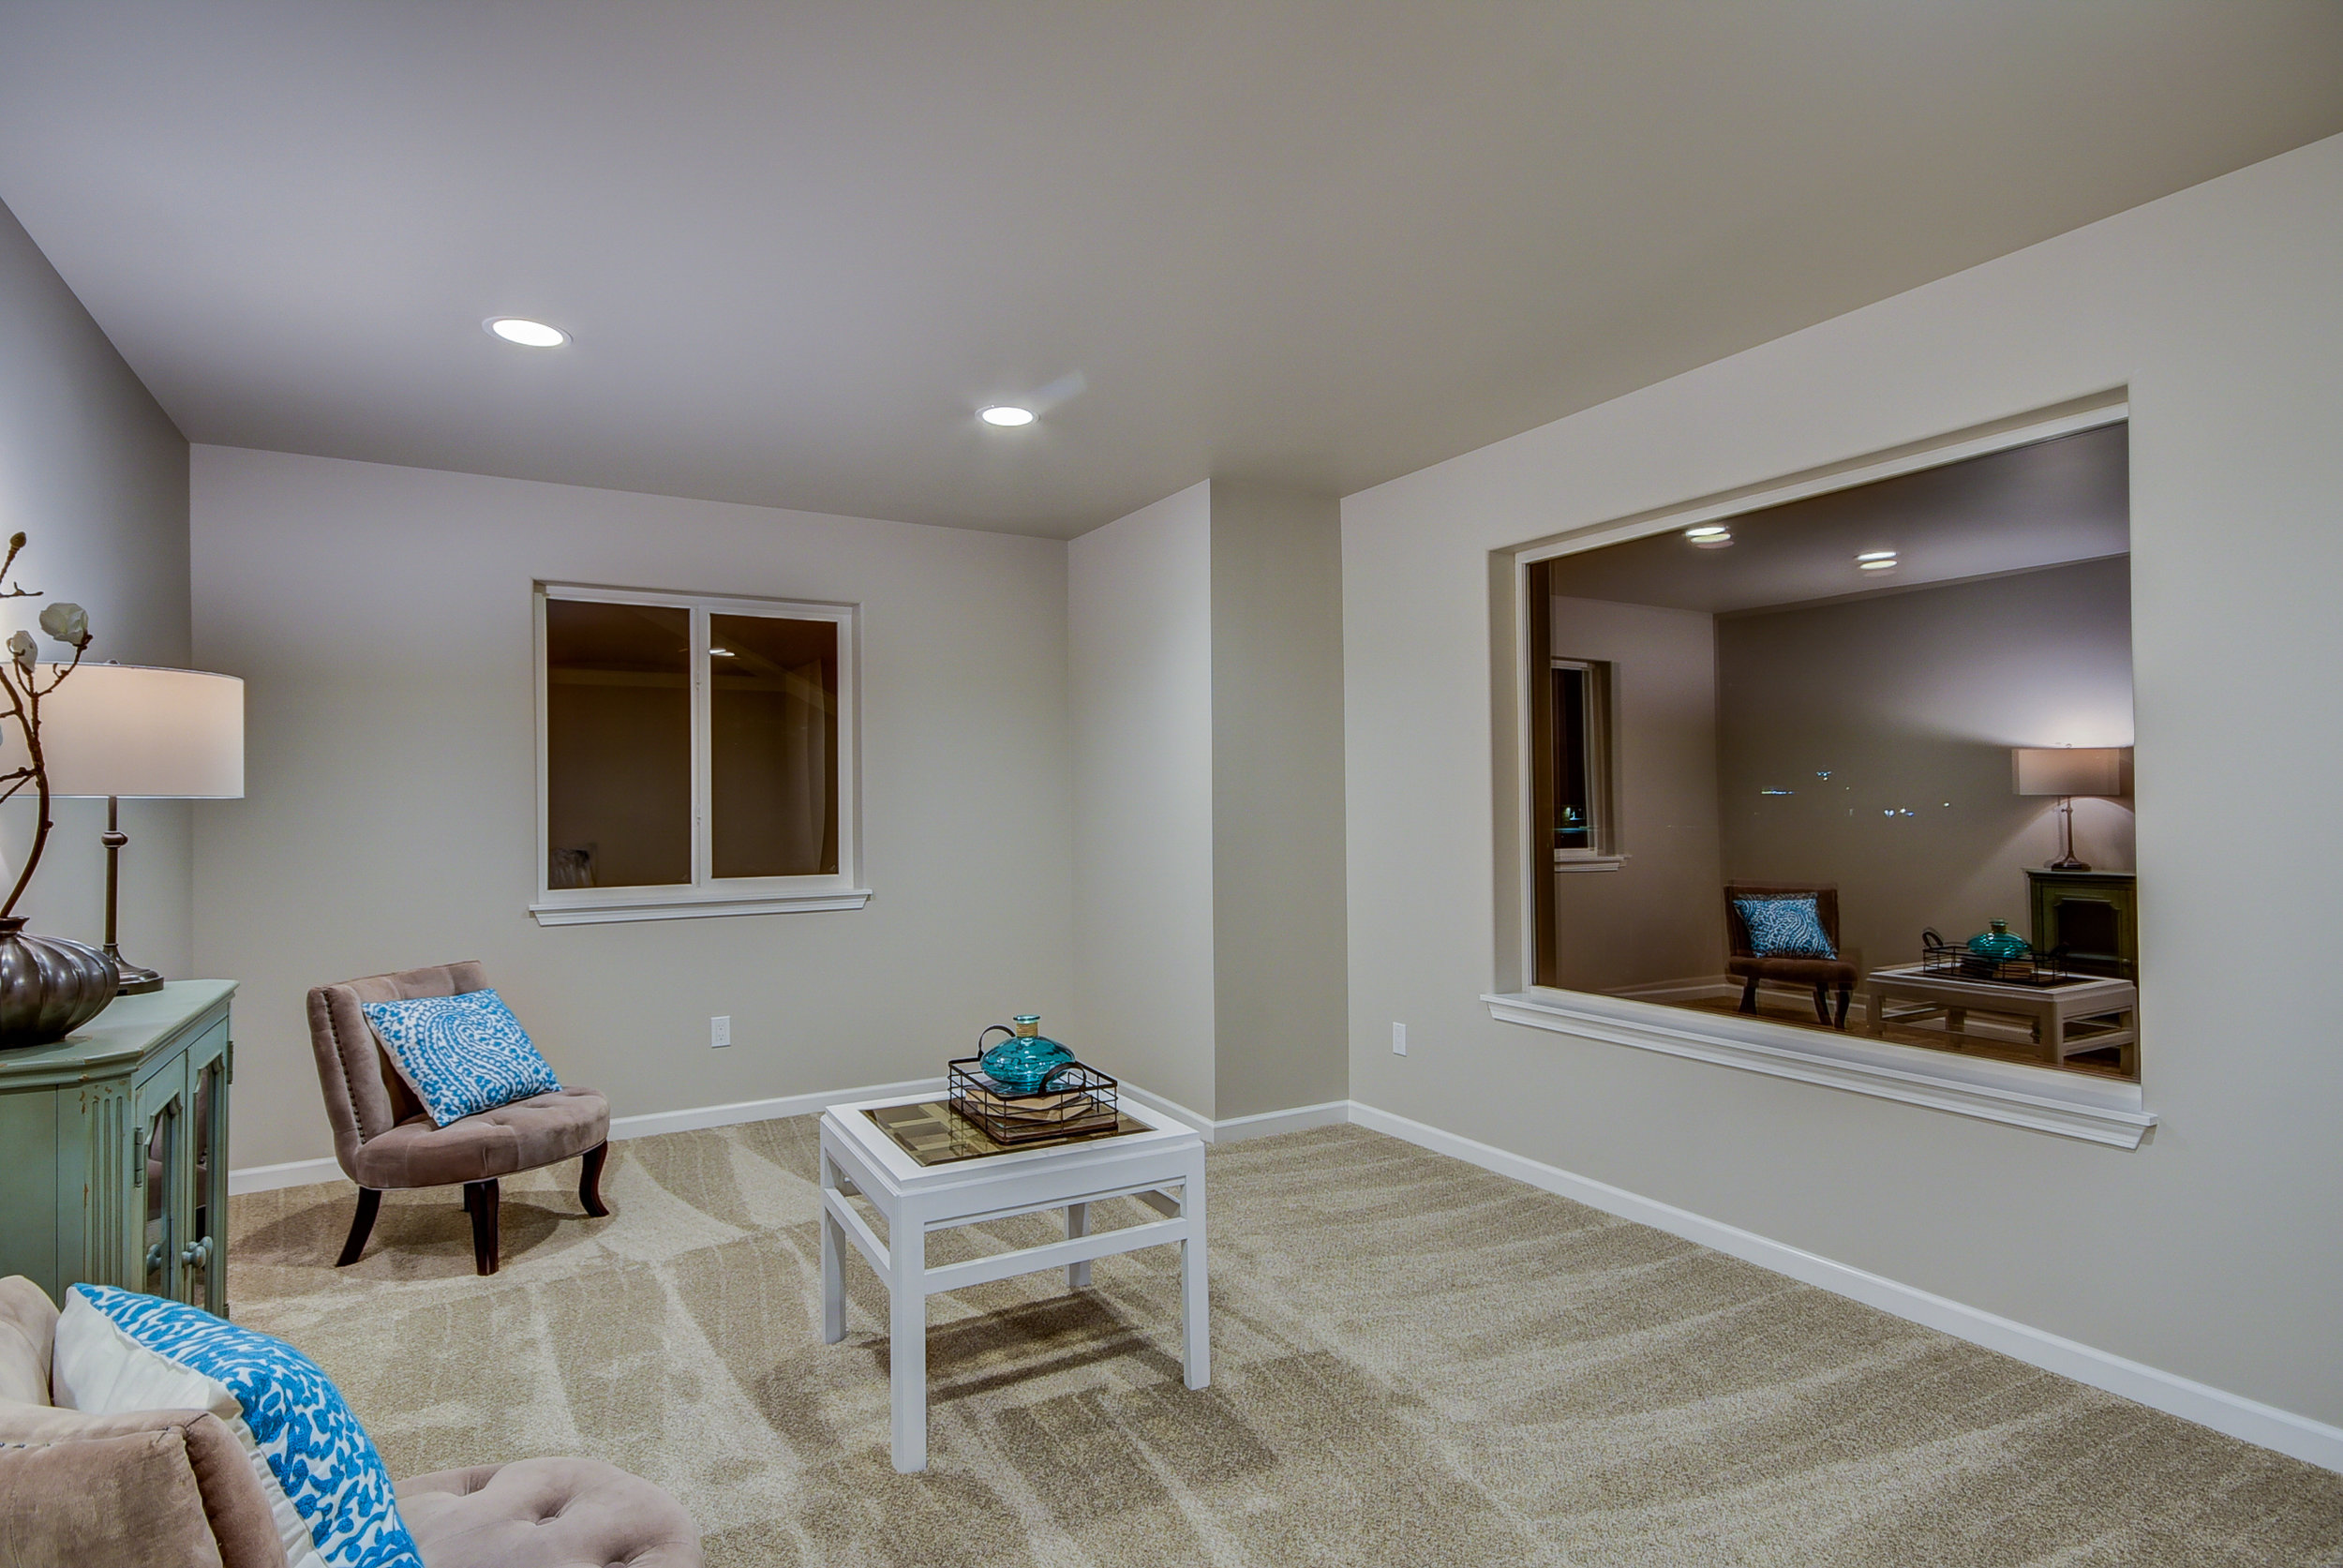 A different perspective of the 2nd family room...